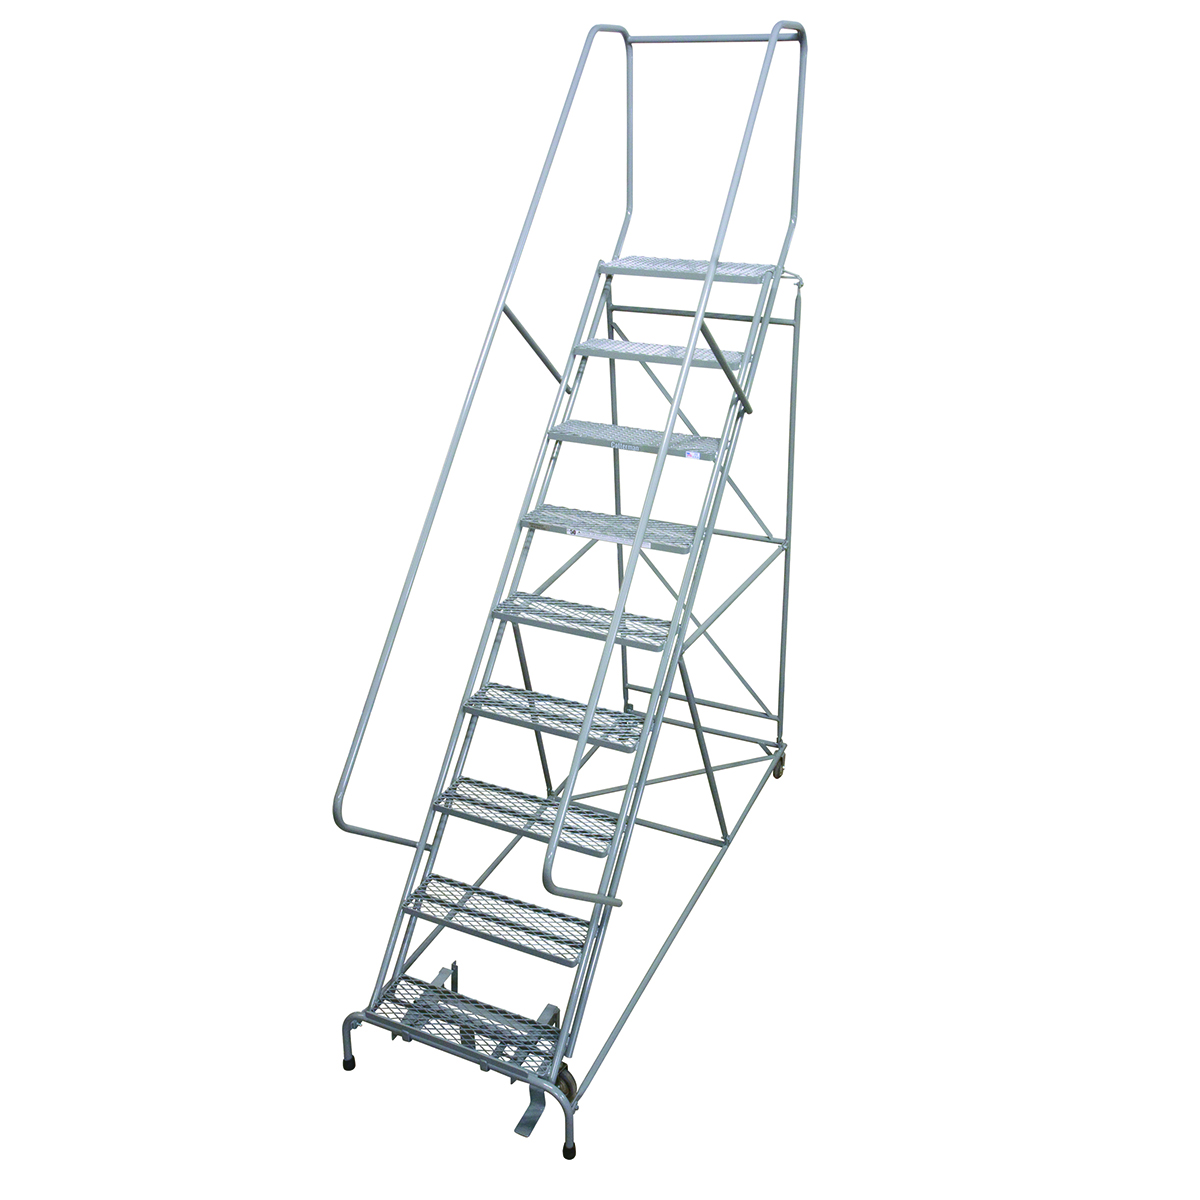 50 Degree Climbing Angle Ladder with 8 Steps and Platform